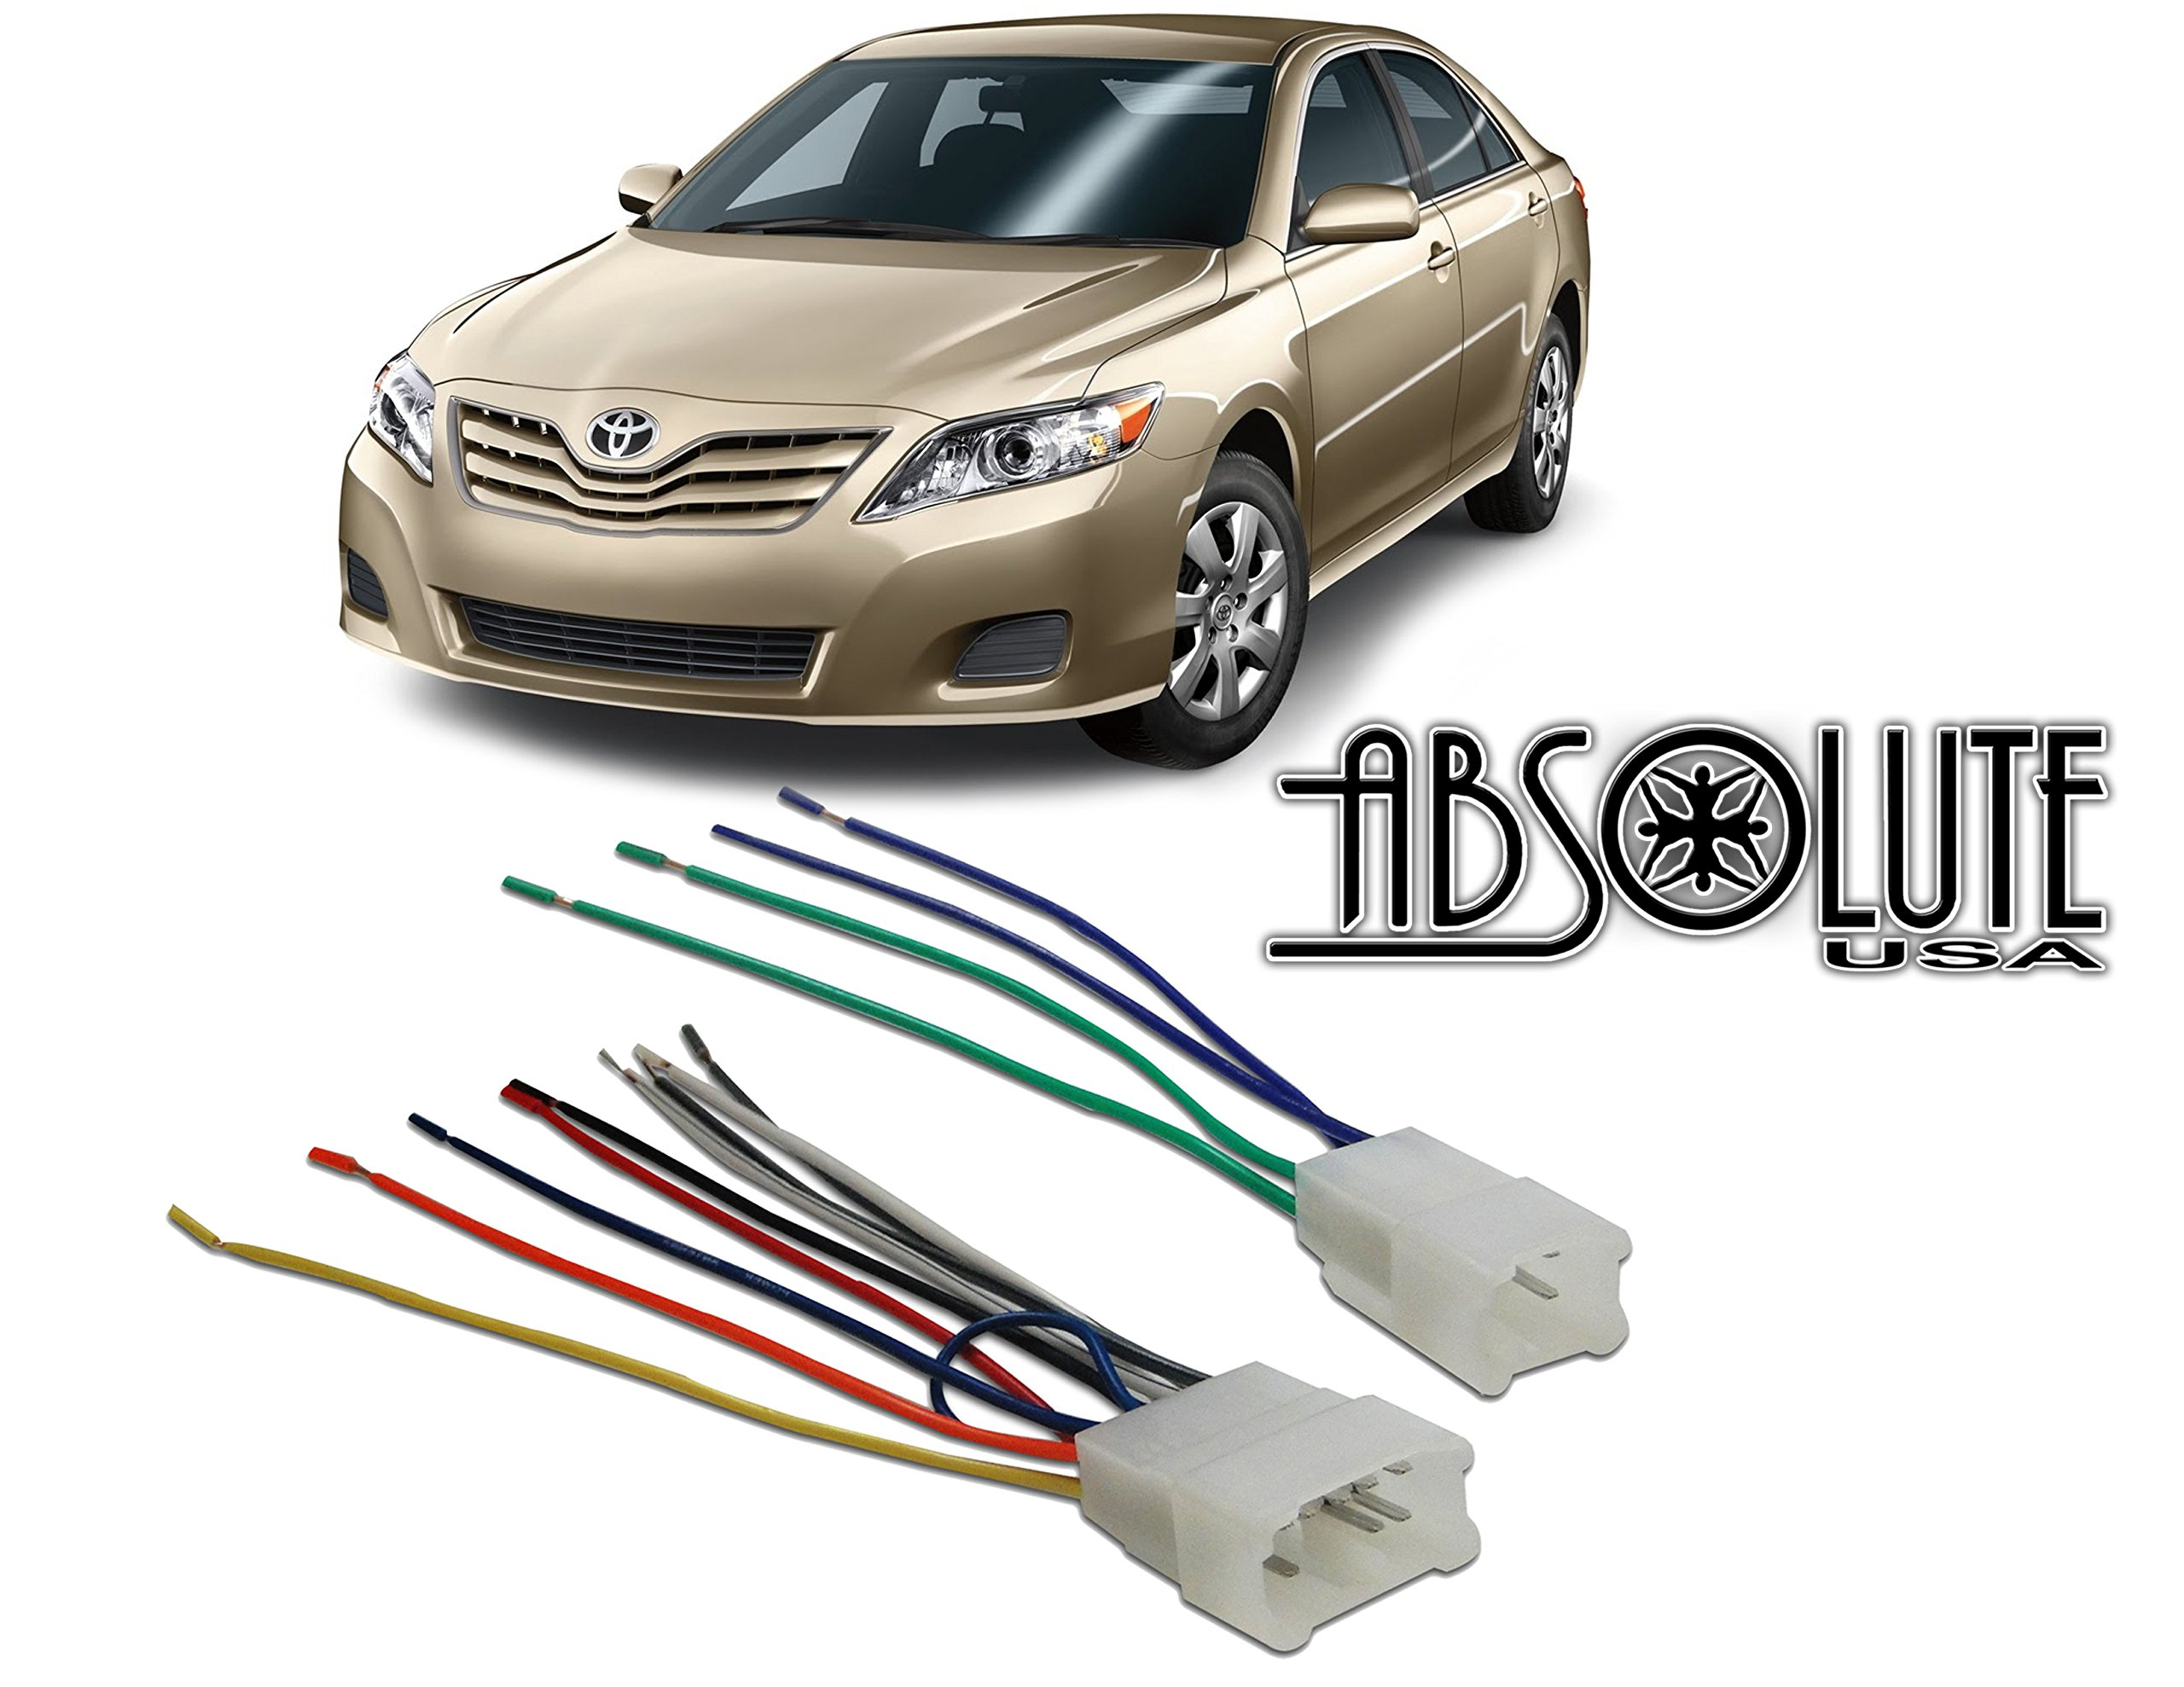 Wiring Harness Toyota Corolla from sc01.alicdn.com